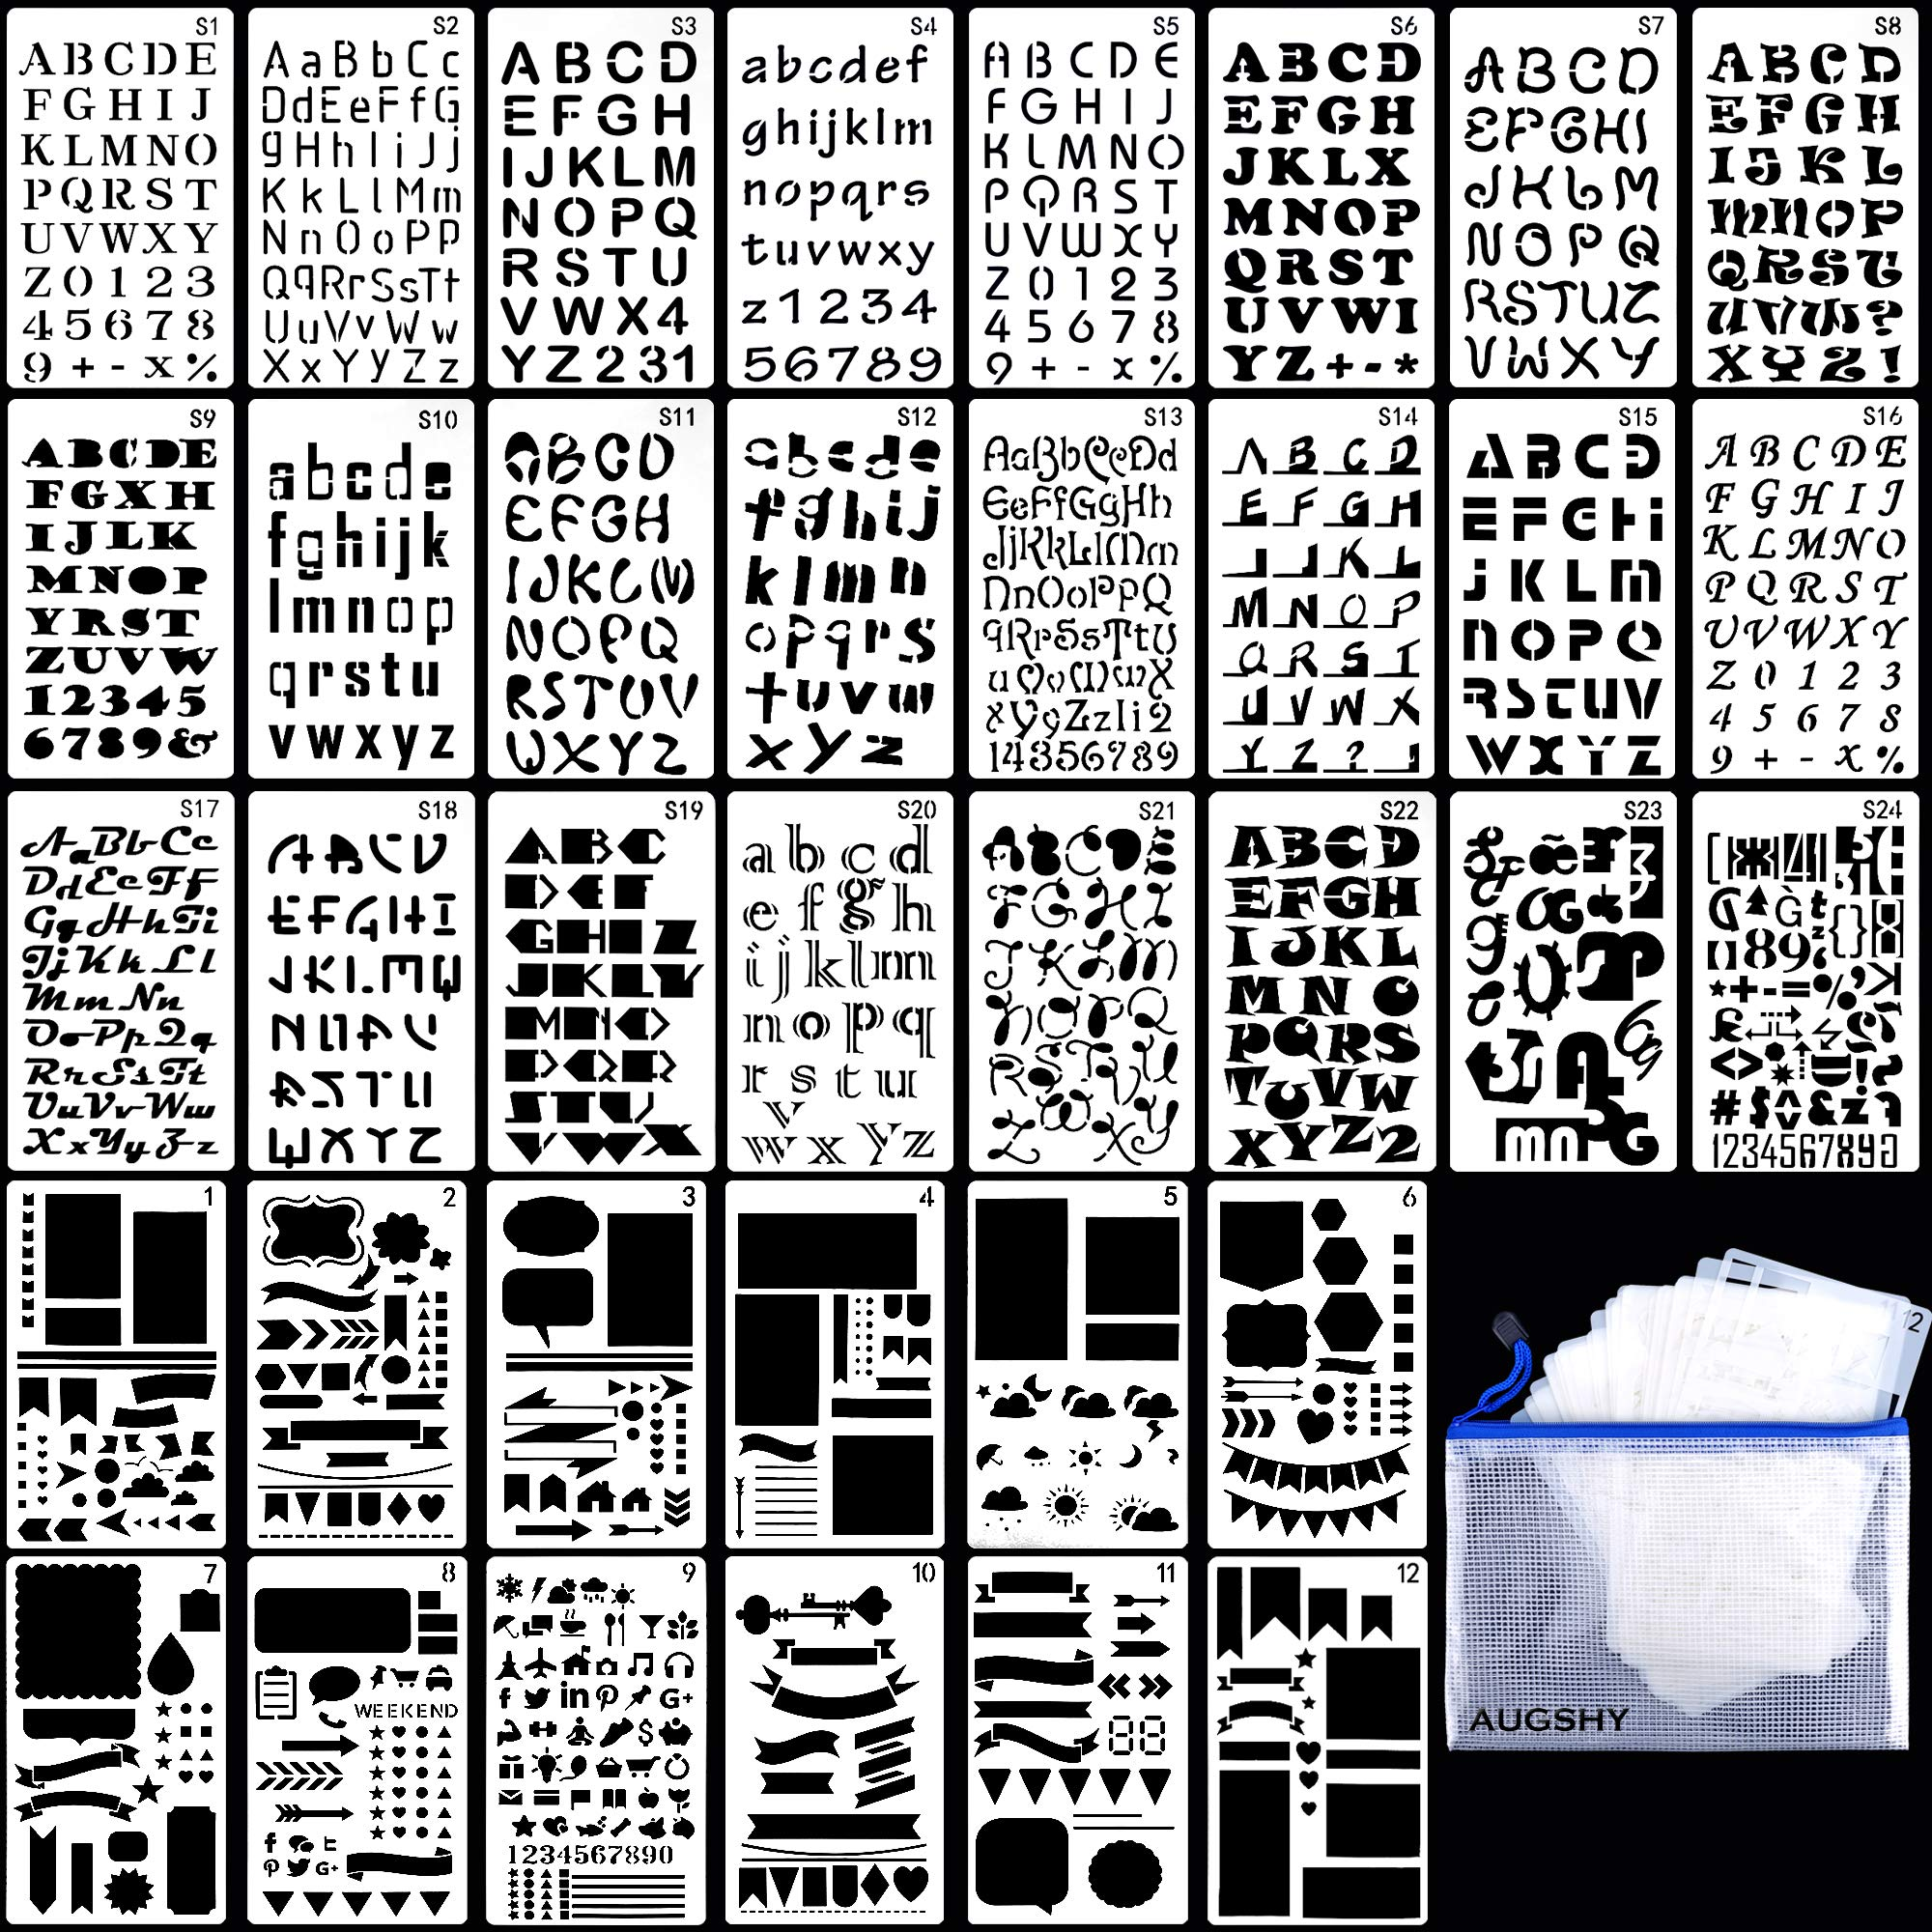 36PCs Letter and Number Stencils DIY Drawing Templates Journal Stencils with A Storage Bag for Notebook, Diary, Scrapbook by Augshy